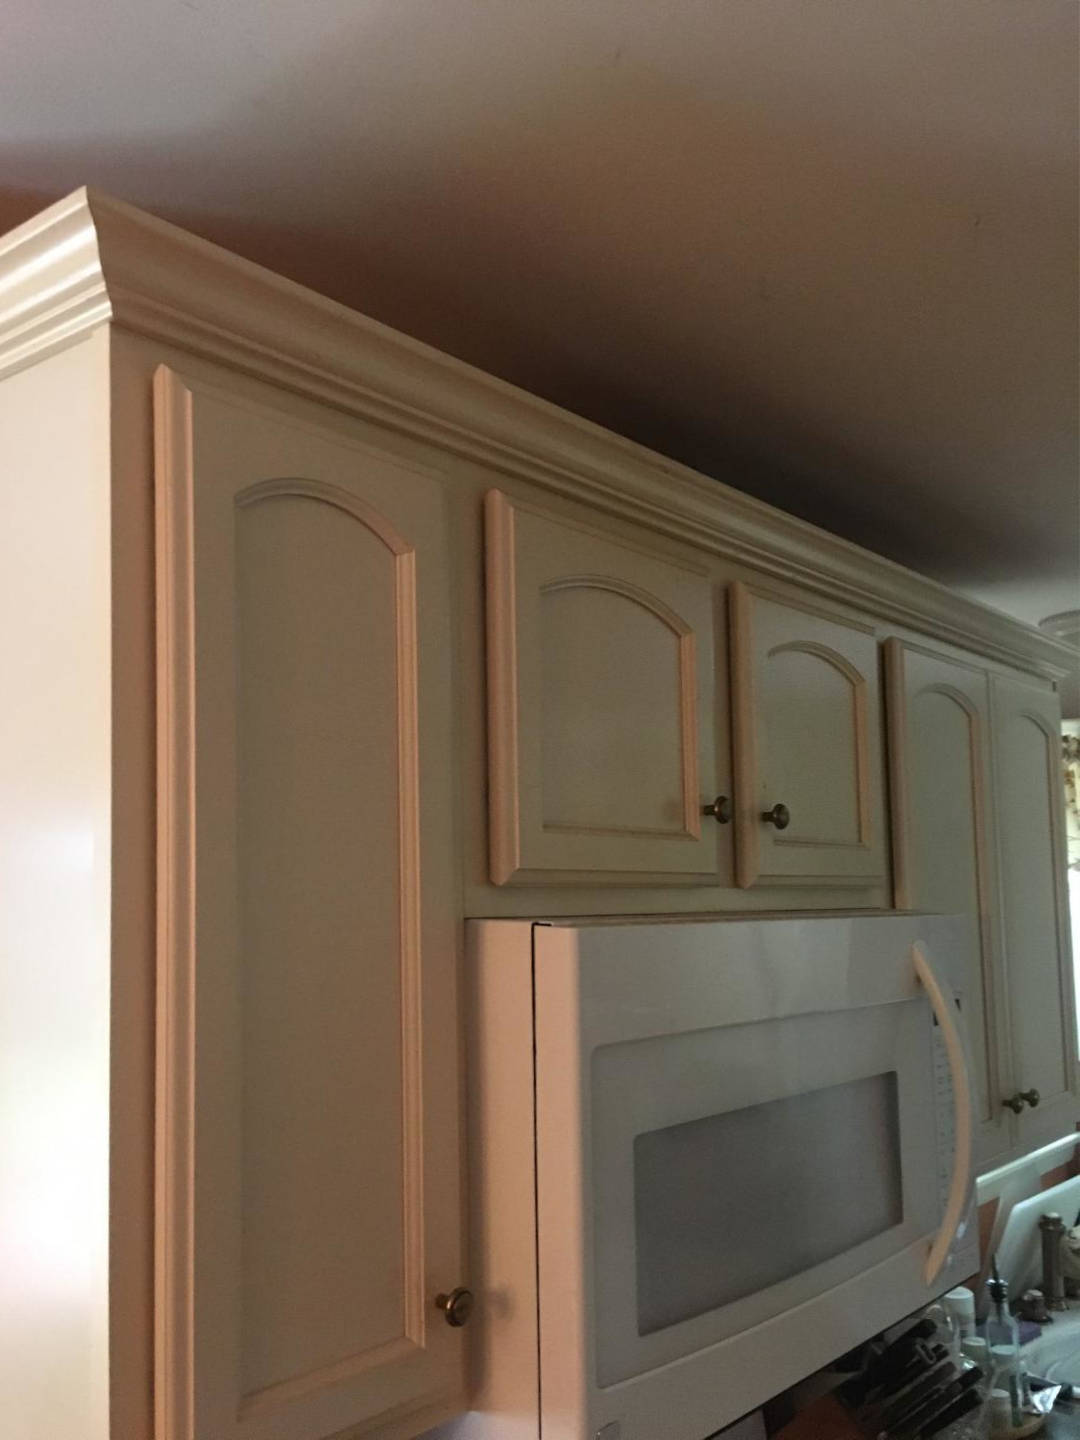 Off-white-kitchen-cabinets-with-crown-molding-Scottsdale-3-opt